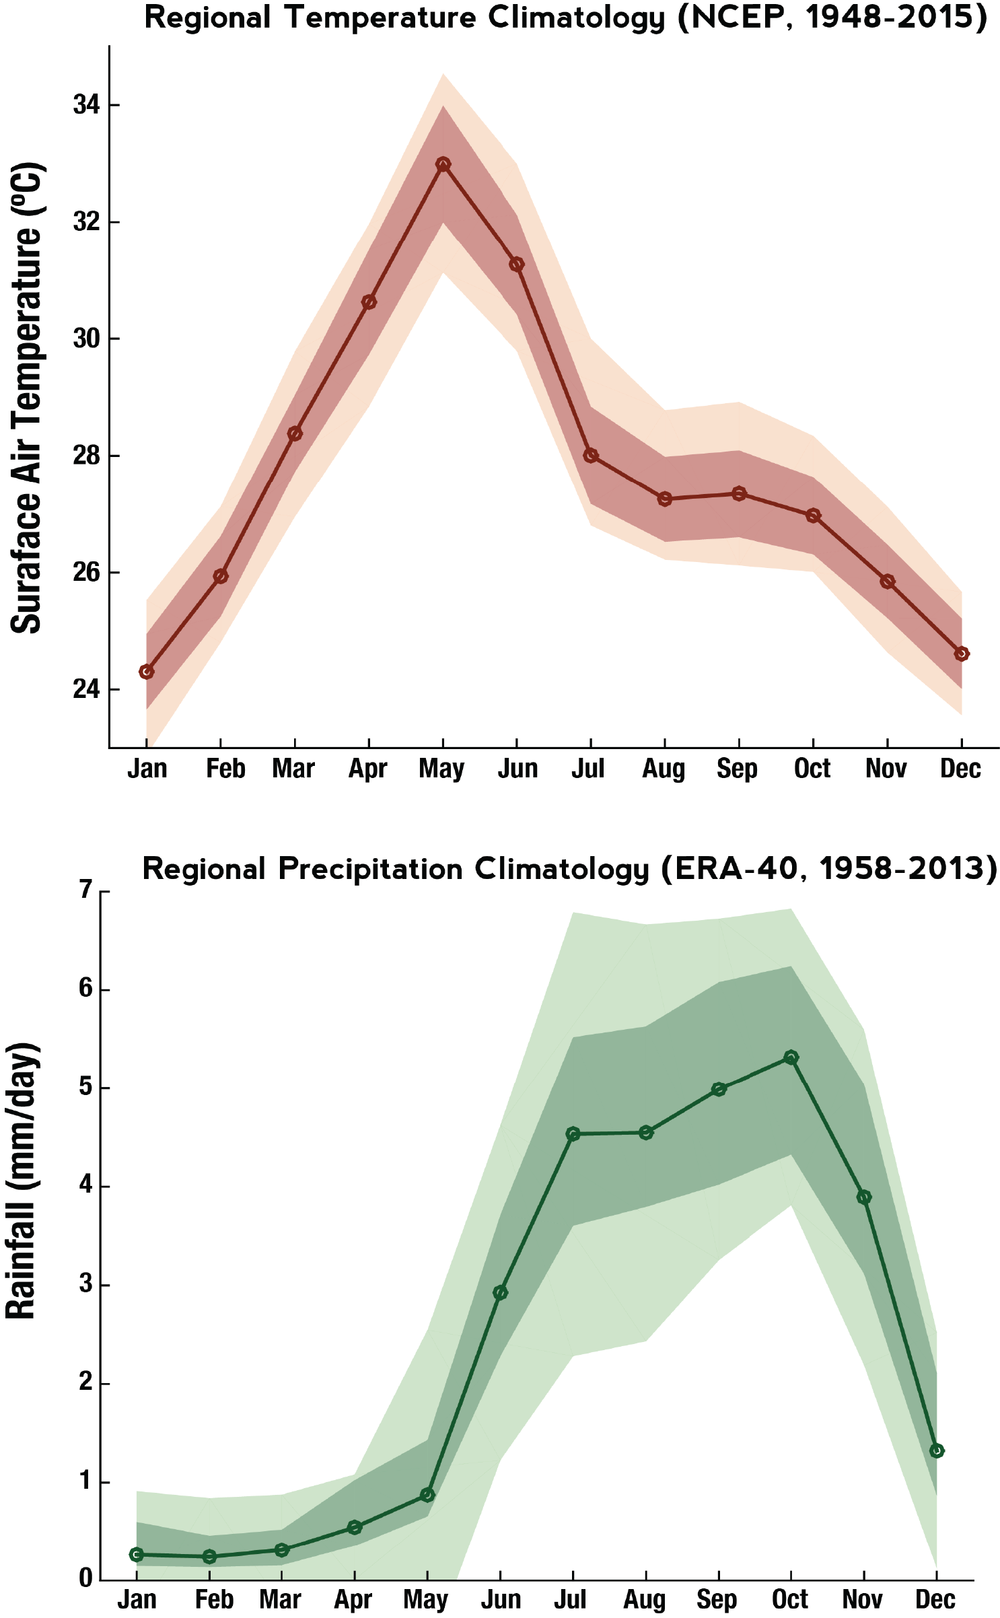 Rainfall in the southeastern parts of India mainly derive from the retreating monsoon, peaking during October, while temperatures peak during May, typically when heat waves occur. Thus, summer monsoon rains cannot be depended upon to always alleviate May heat waves in southeastern India.